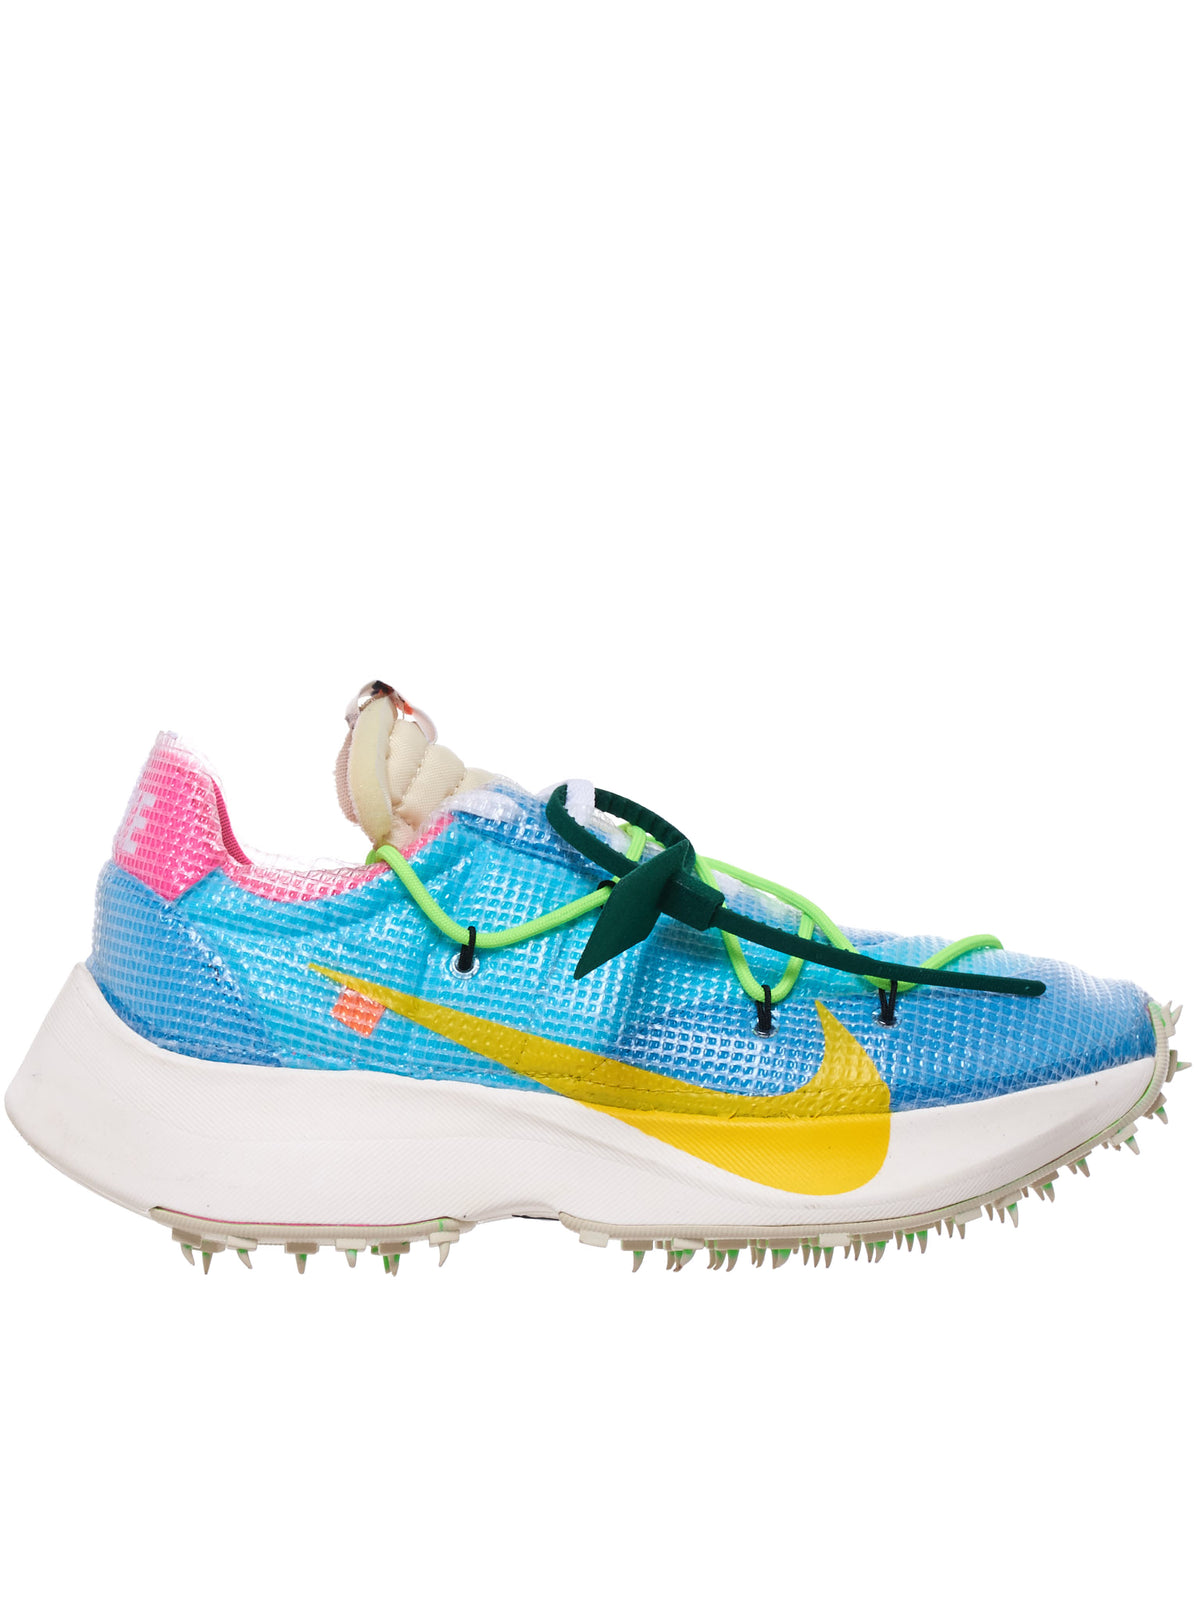 Nike Vapor Street Off-White Sneakers (CD8178-400-BLUE-YELLOW)